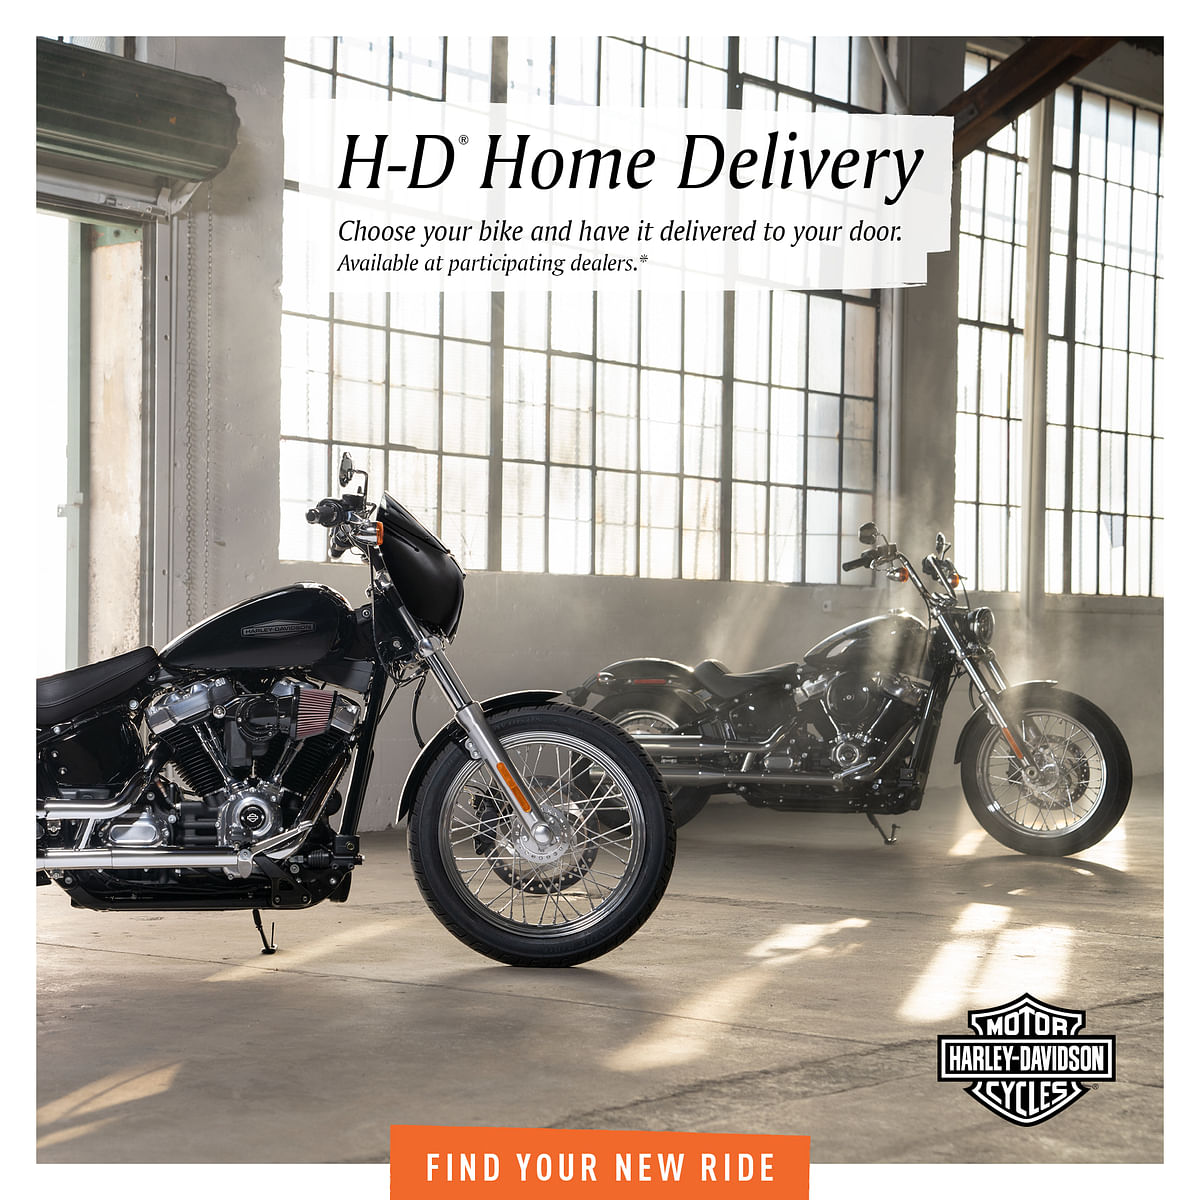 Harley-Davidson has begun a home delivery programme, where they can begin the buying process online.